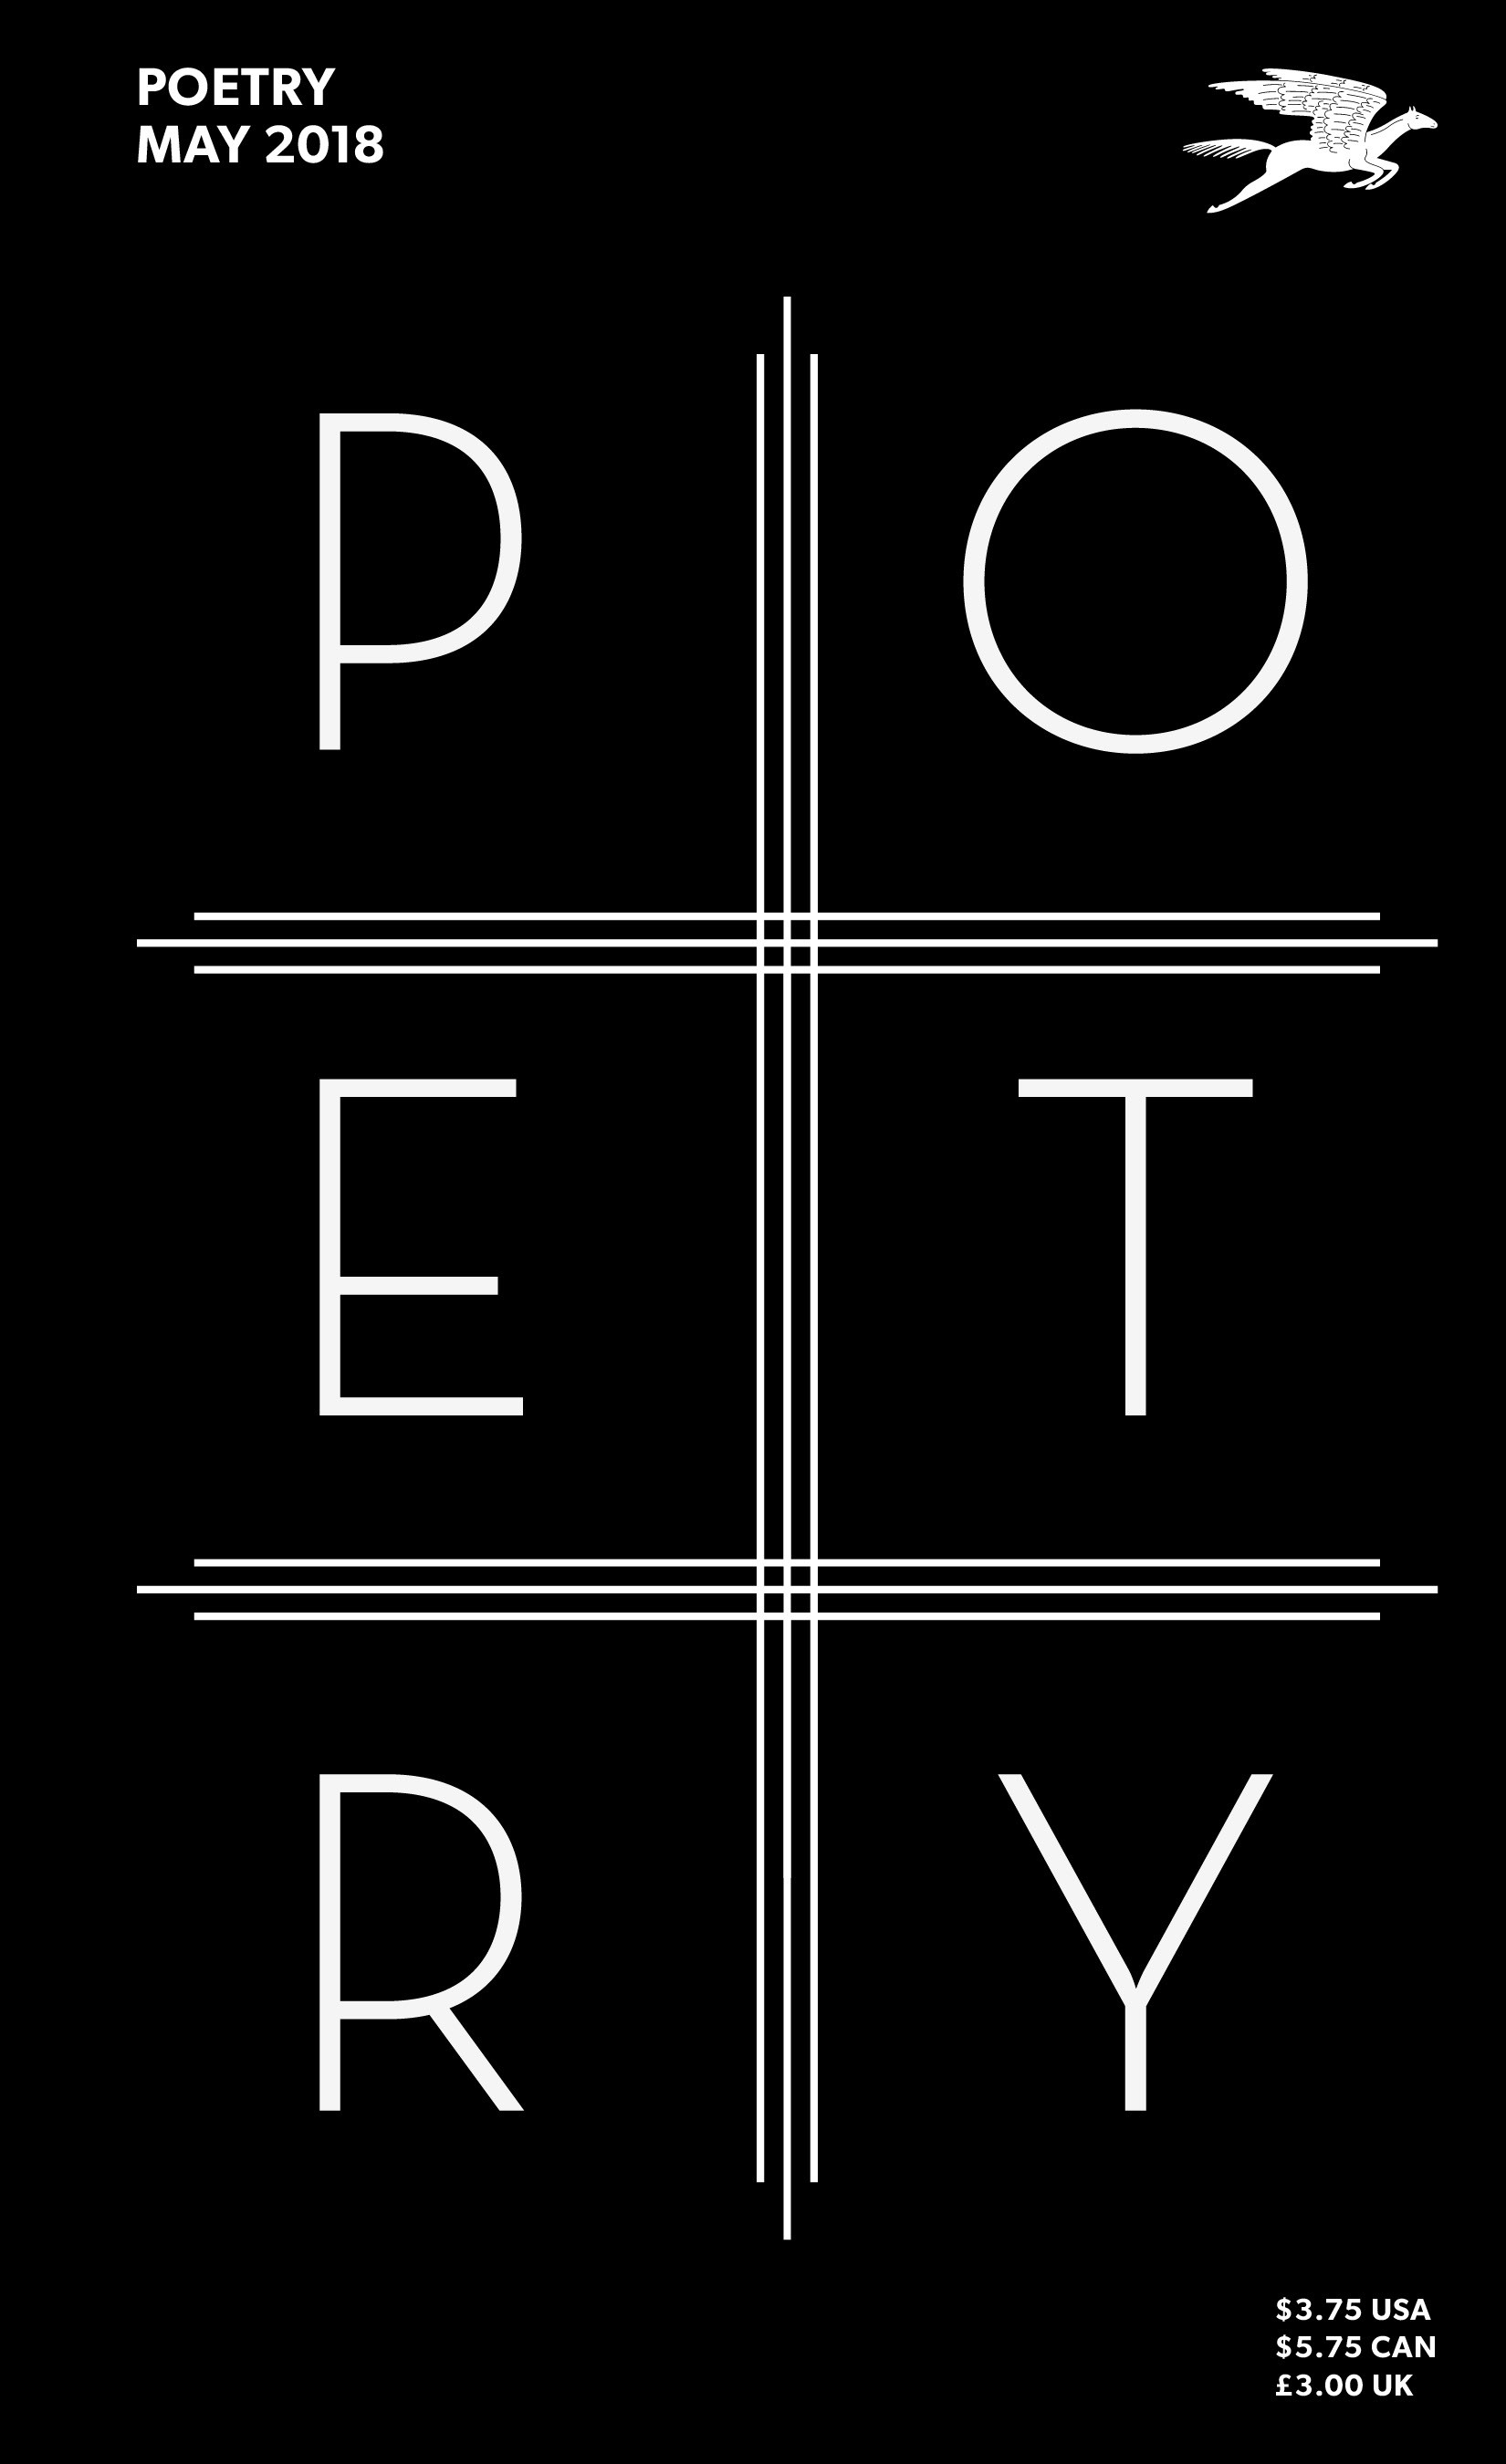 May 2018 Poetry Magazine cover